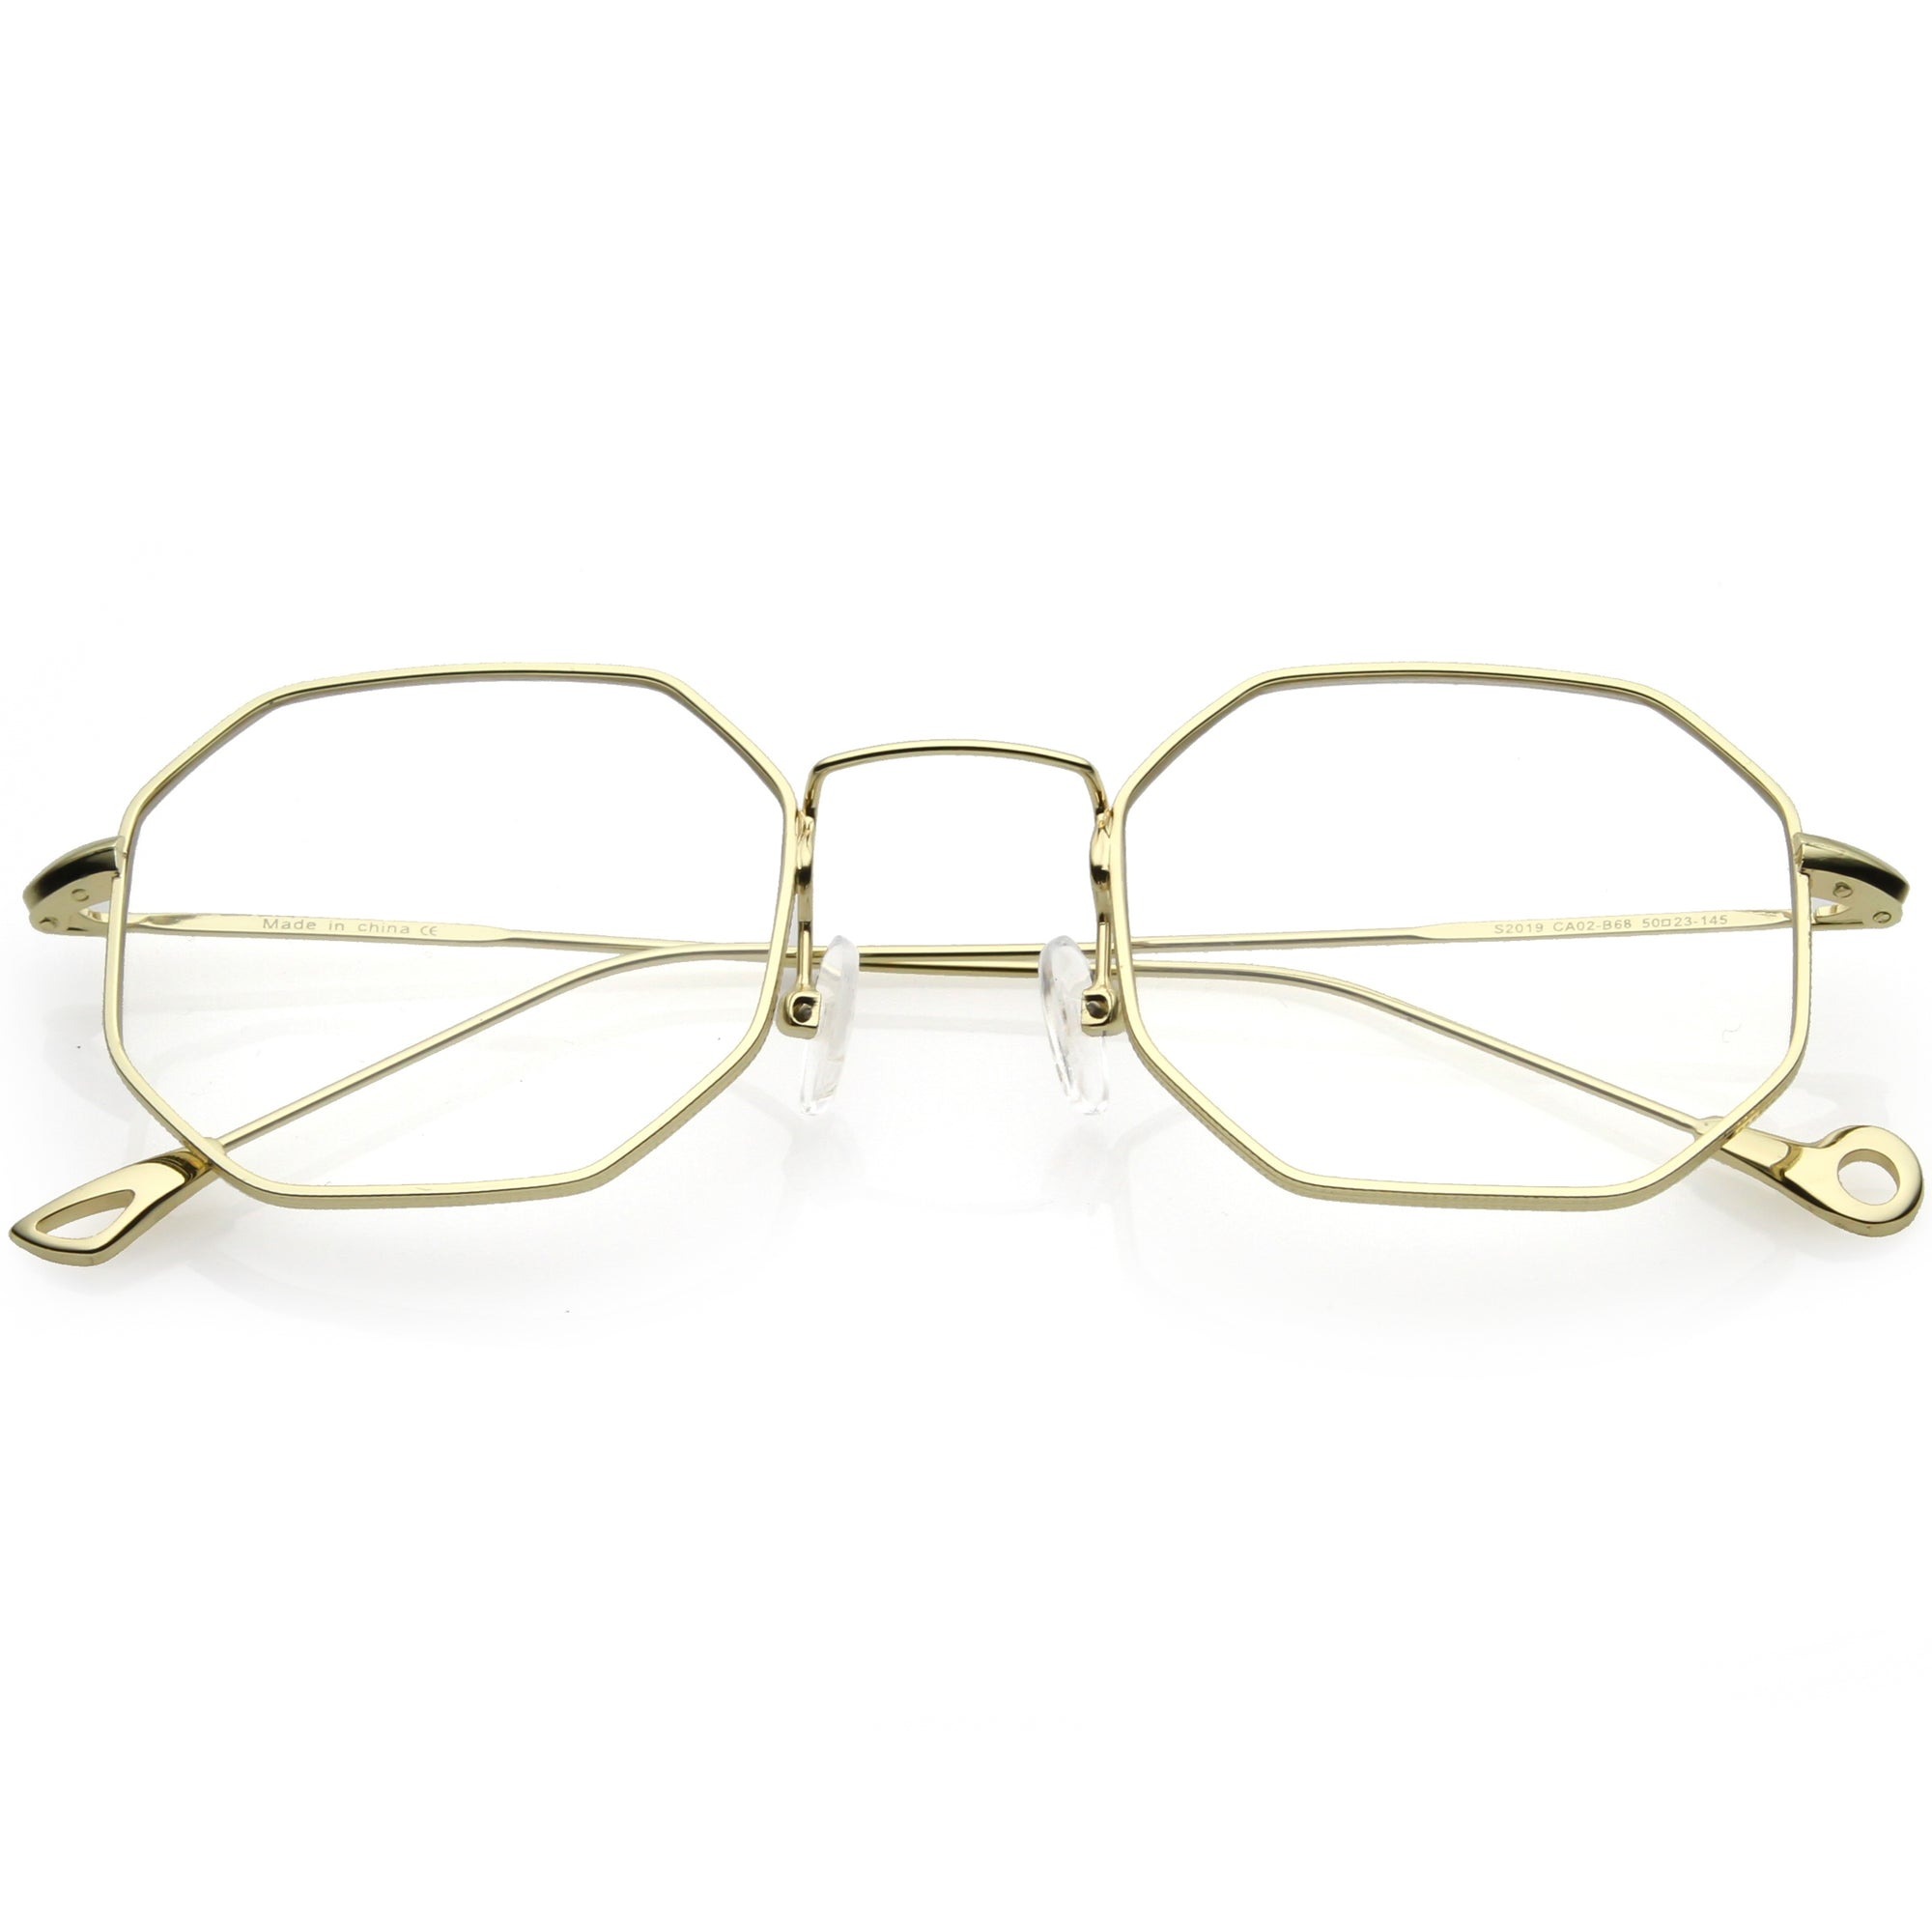 Premium Retro Geometric Octagon Clear Lens Glasses C494